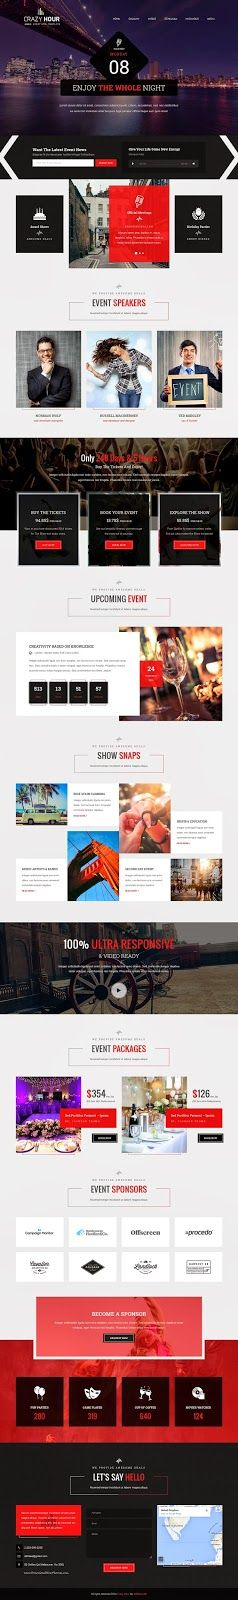 Crazy Hour Best #Event Management HTML Template #party #conference